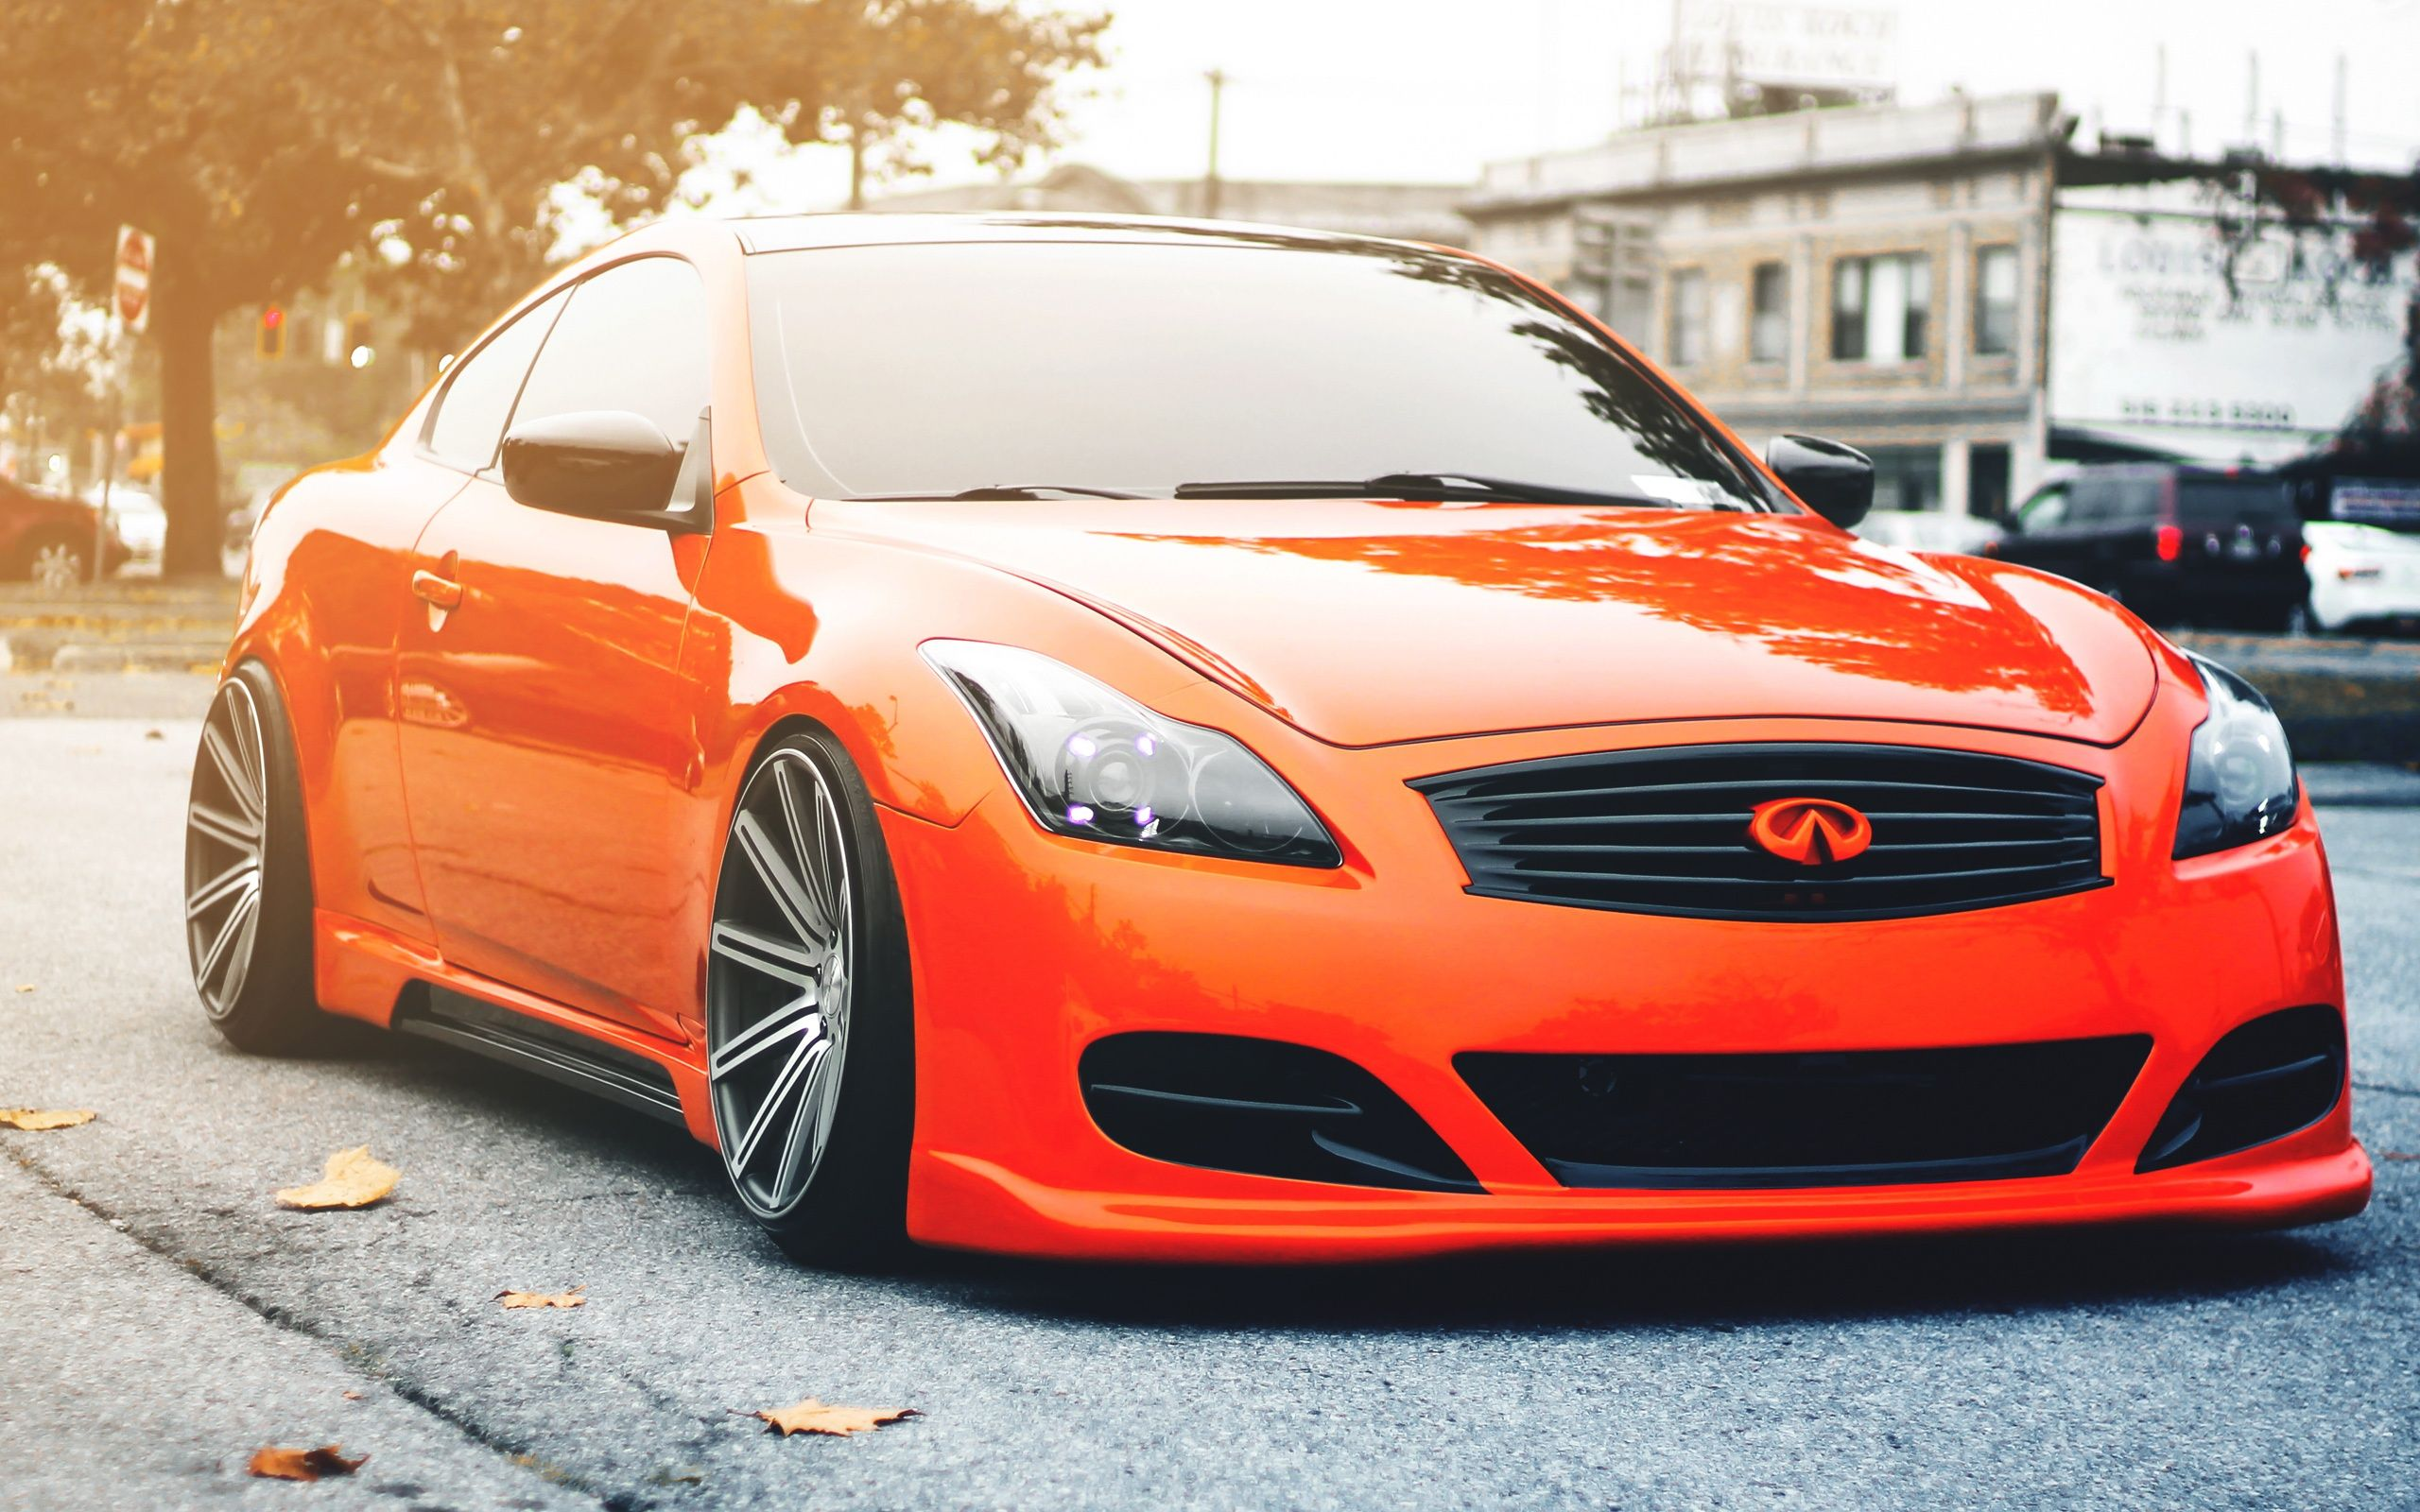 best infiniti cars wallpapers hd wallpapers fit hdwallpapersfitcom pinterest cars wallpapers and fit